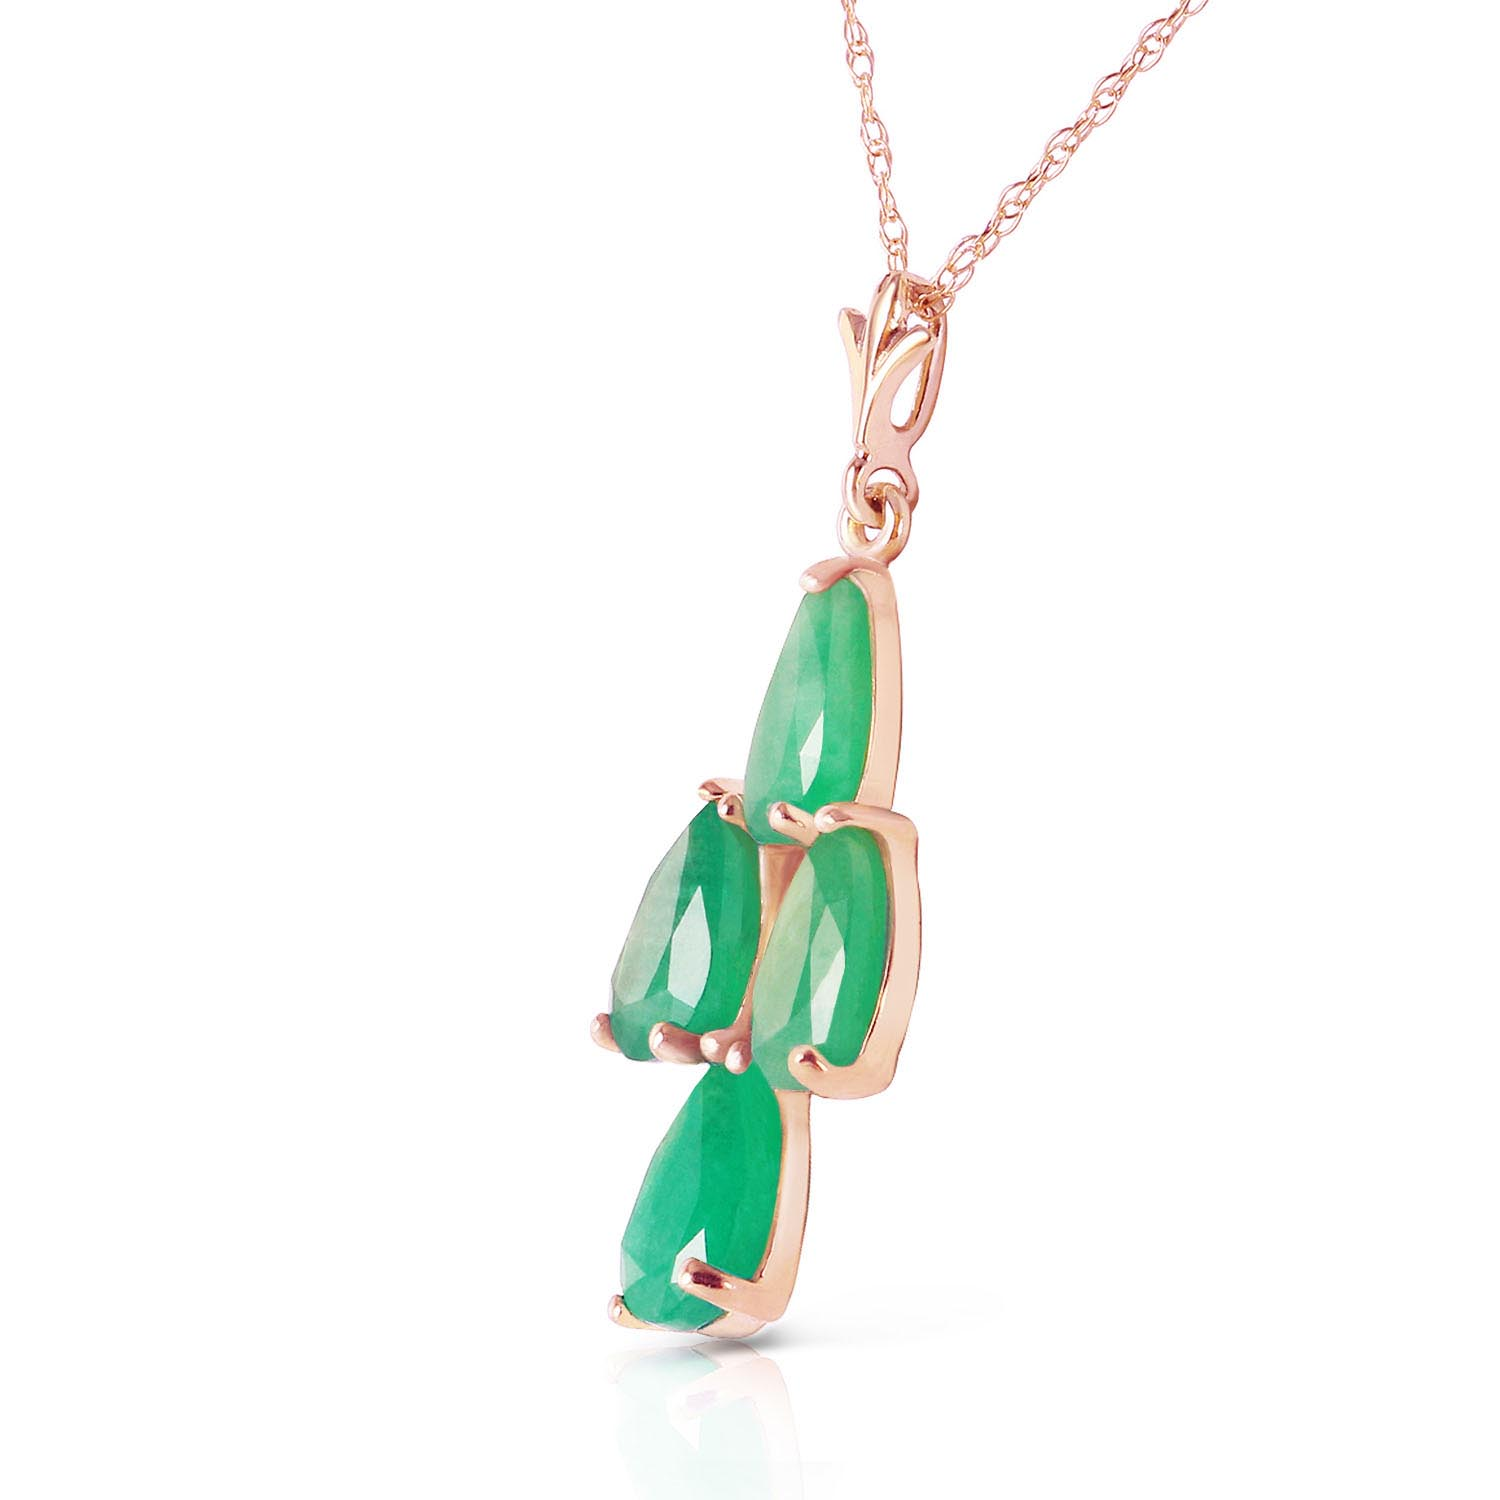 Pear Cut Emerald Pendant Necklace 1.5ctw in 14K Rose Gold